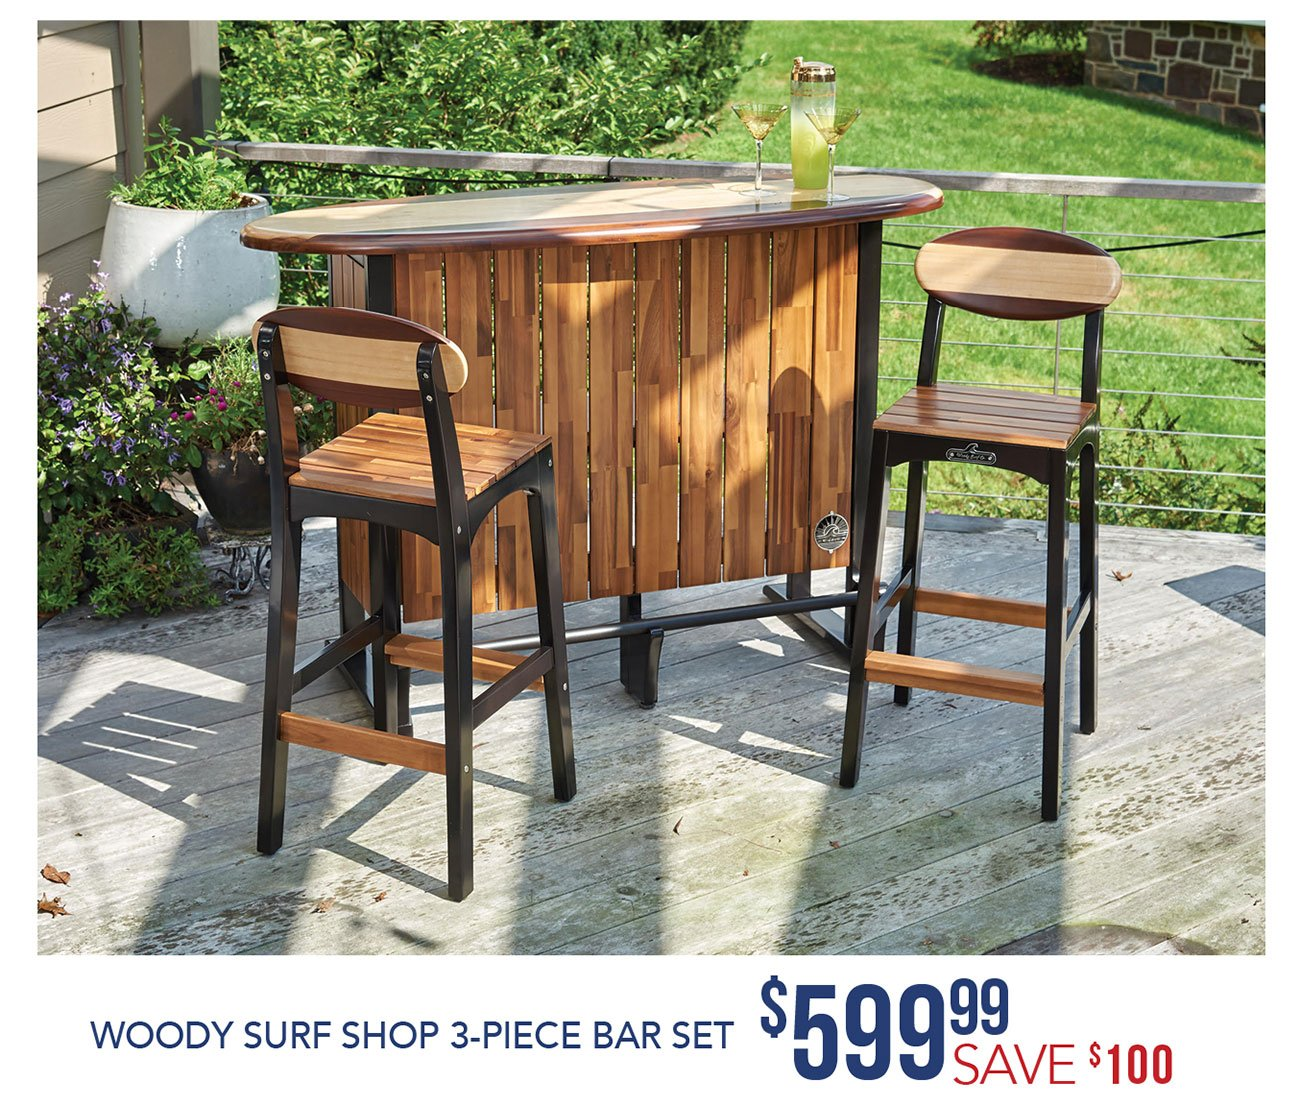 Woody-surf-shop-bar-set